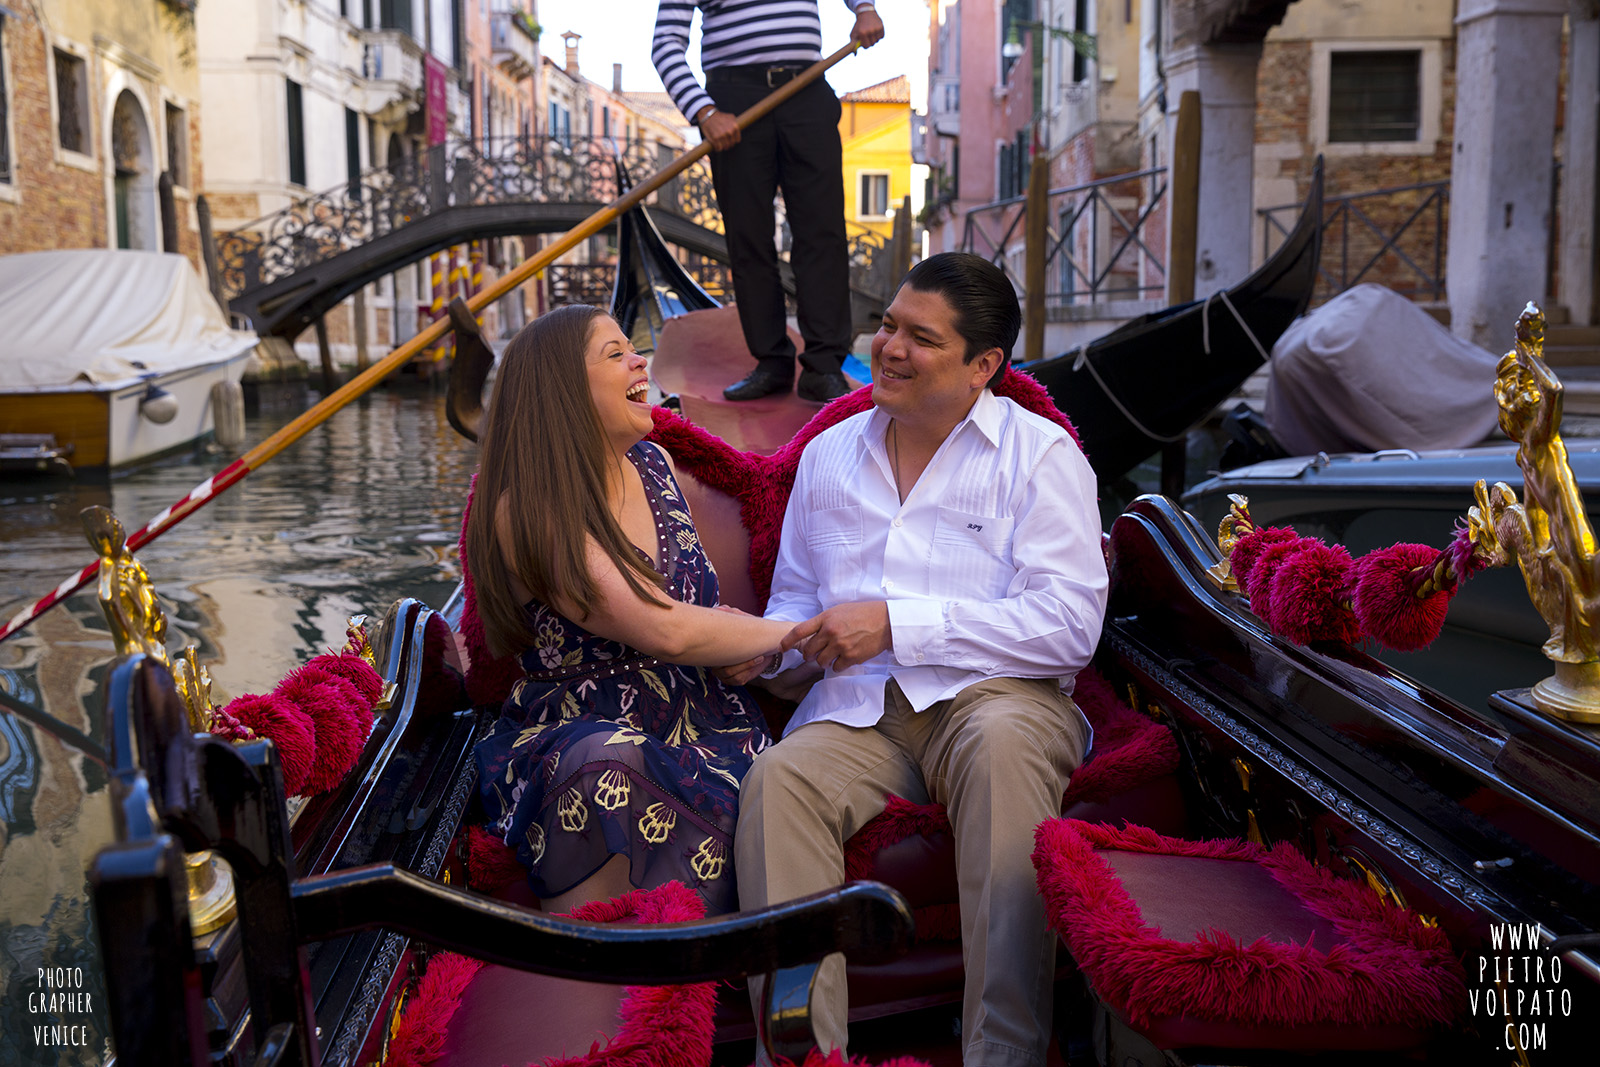 venice engagement photographer photoshoot for couple romantic vacation walk tour